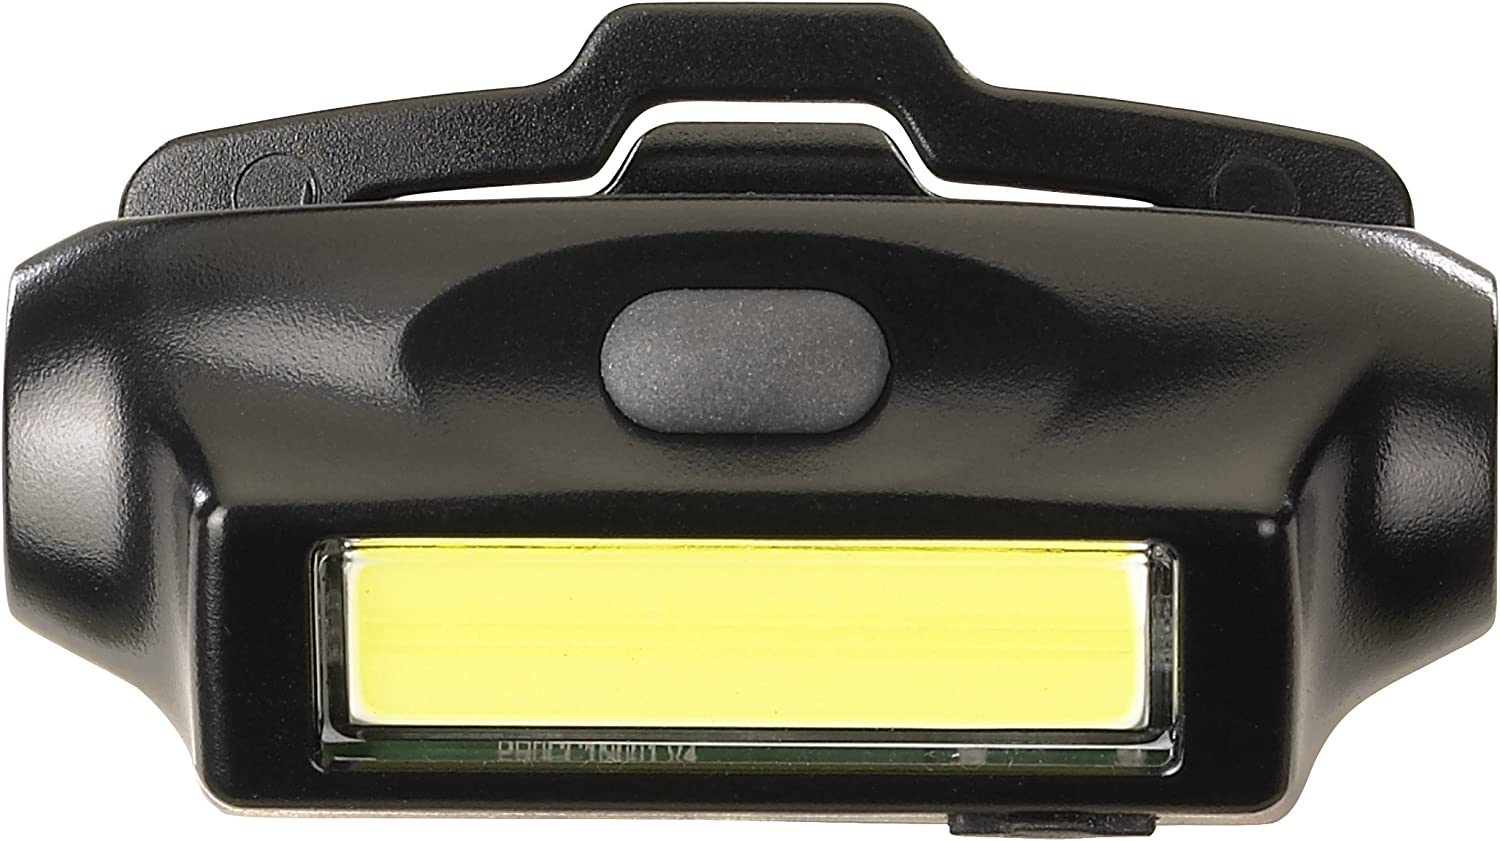 Small Product Image of Streamlight 61702 USB Rechargeable Headlamp Bandit Low-Profile